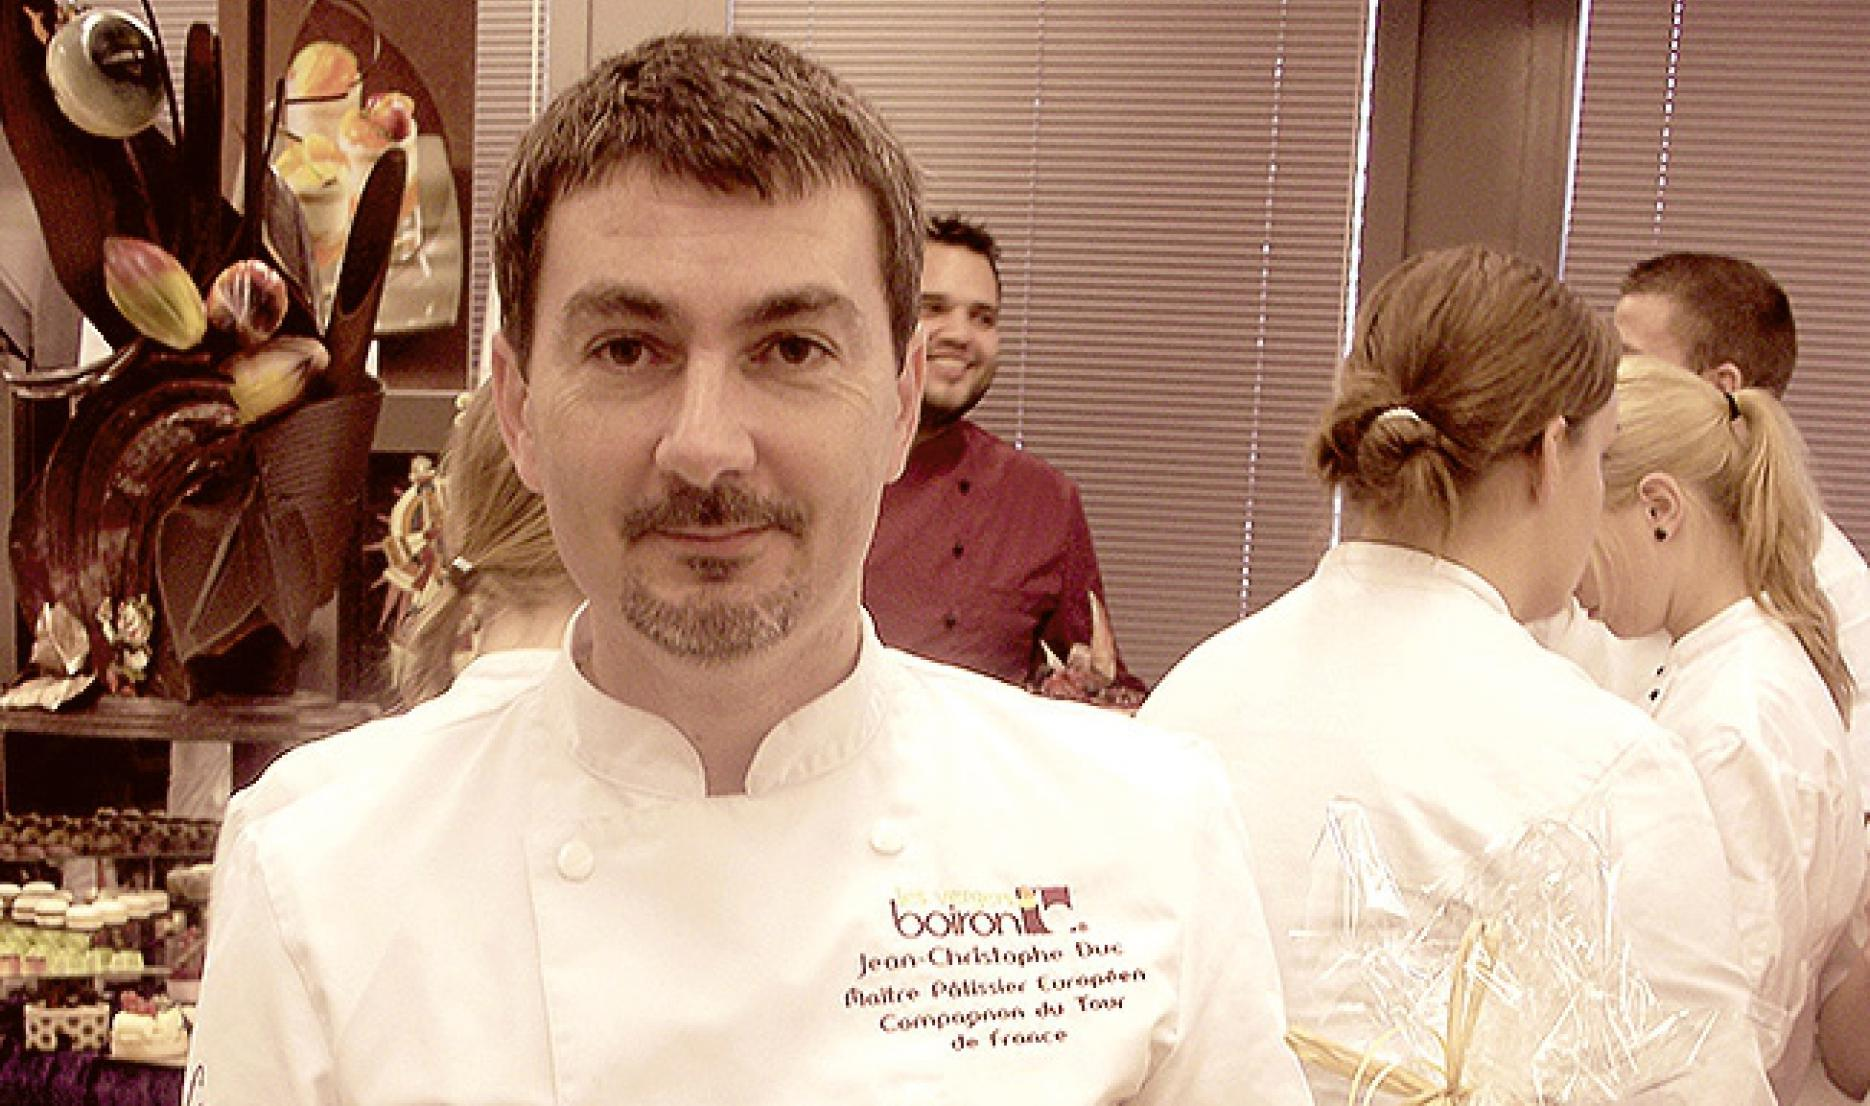 Interview with Jean-Christophe Duc, European master pastry chef and a Compagnon du Tour de France